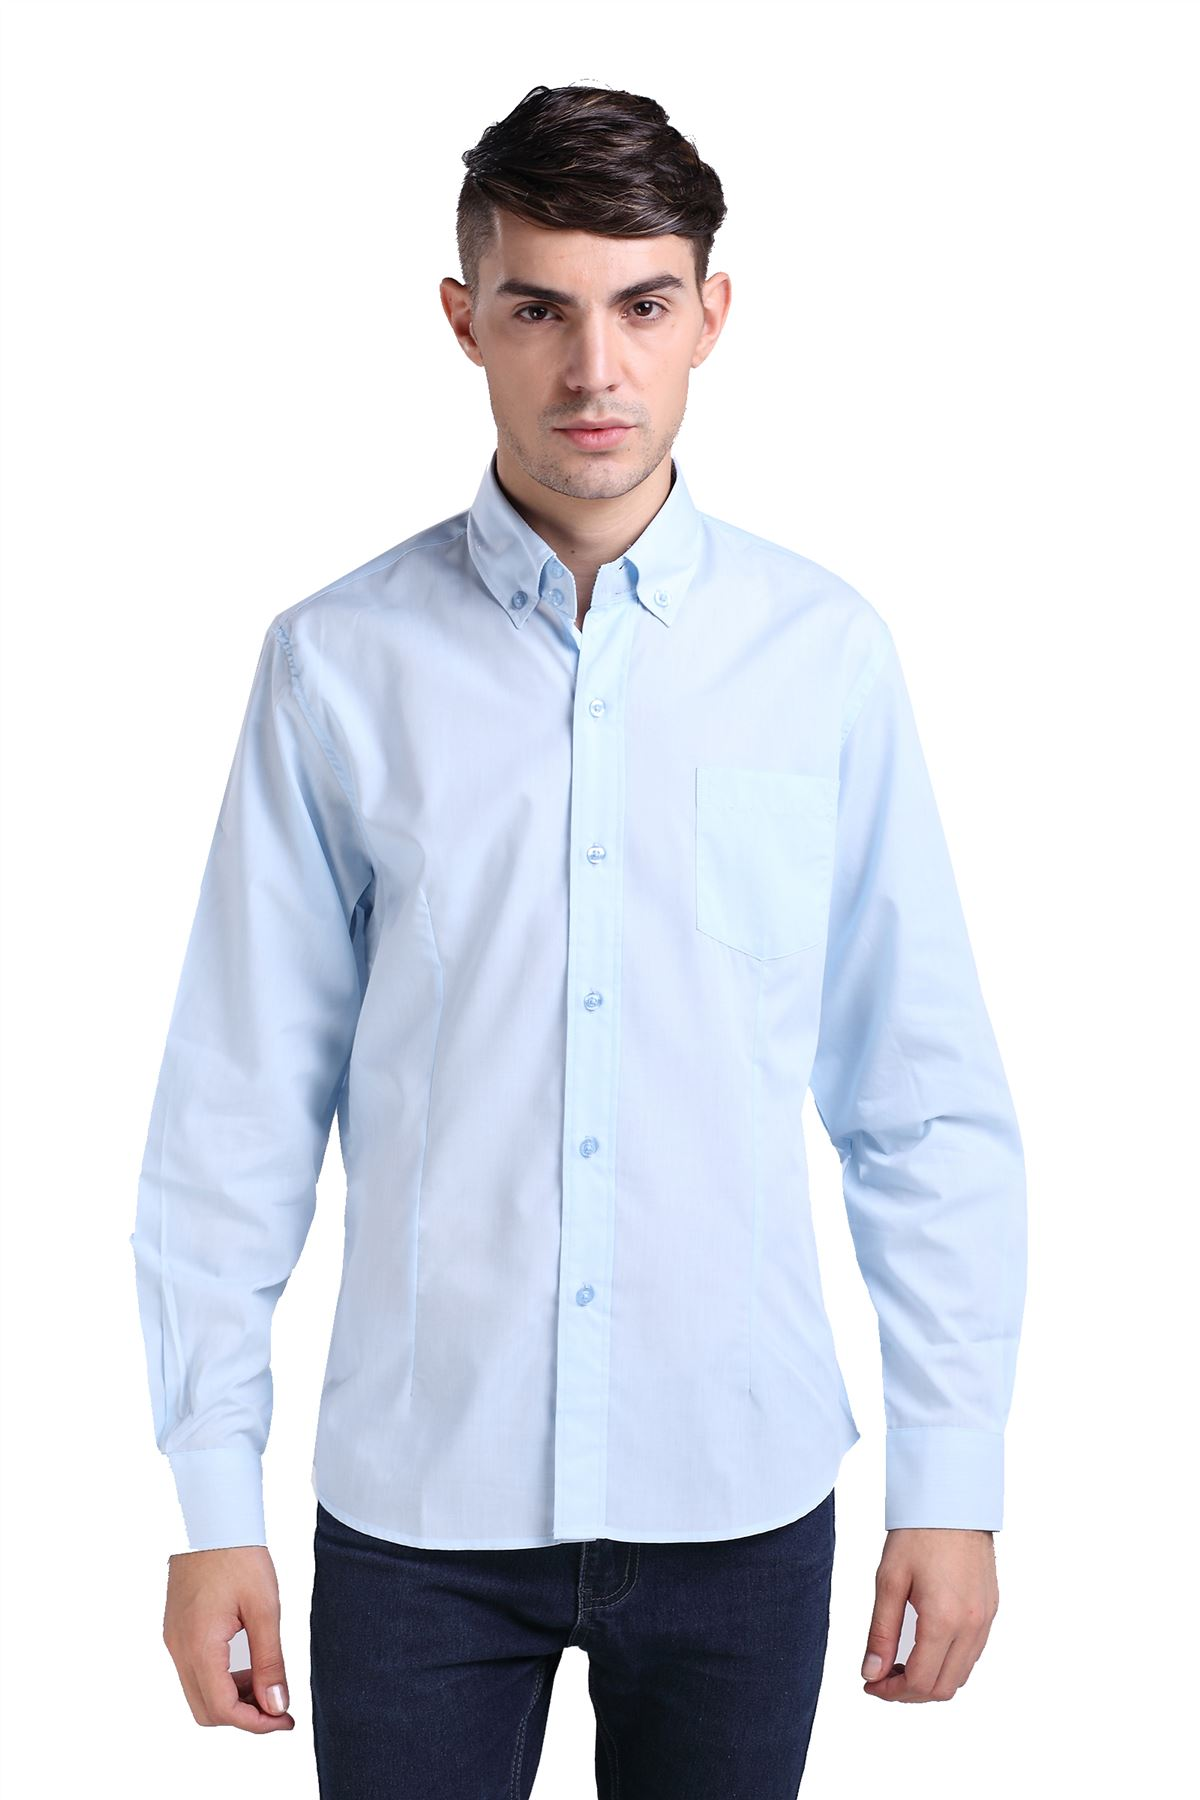 Our great-fitting casual shirts are versatile, comfortable & can be worn every day. Available in a wide range of styles & fits. Free shipping & returns!